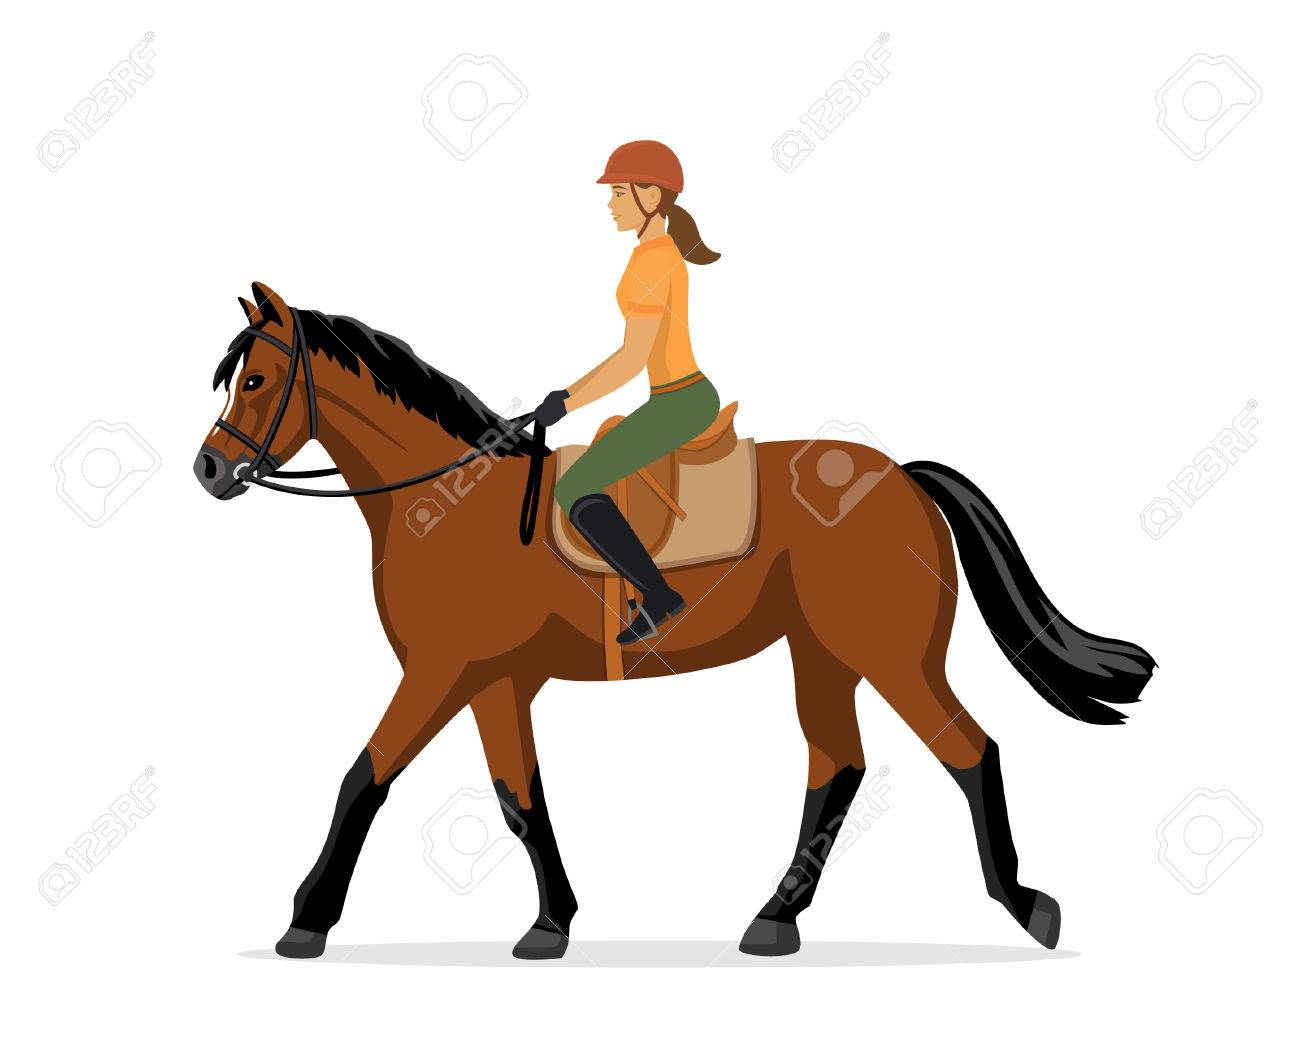 woman horseback riding equestrian sport isolated vector